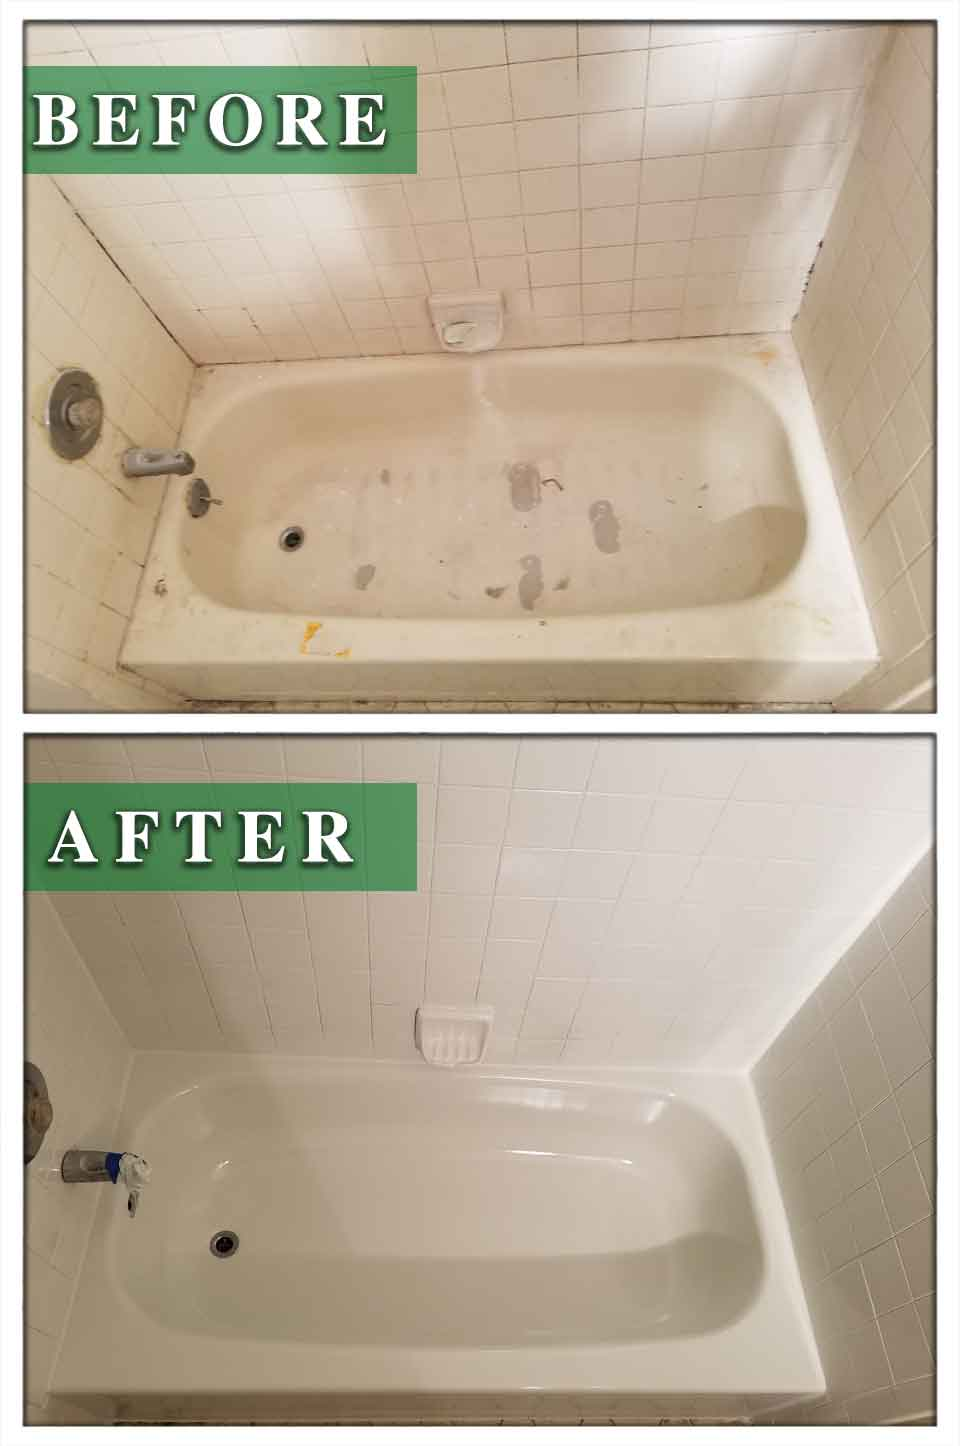 FAQ Frequently asked questions about Bathtub and Countertop ...